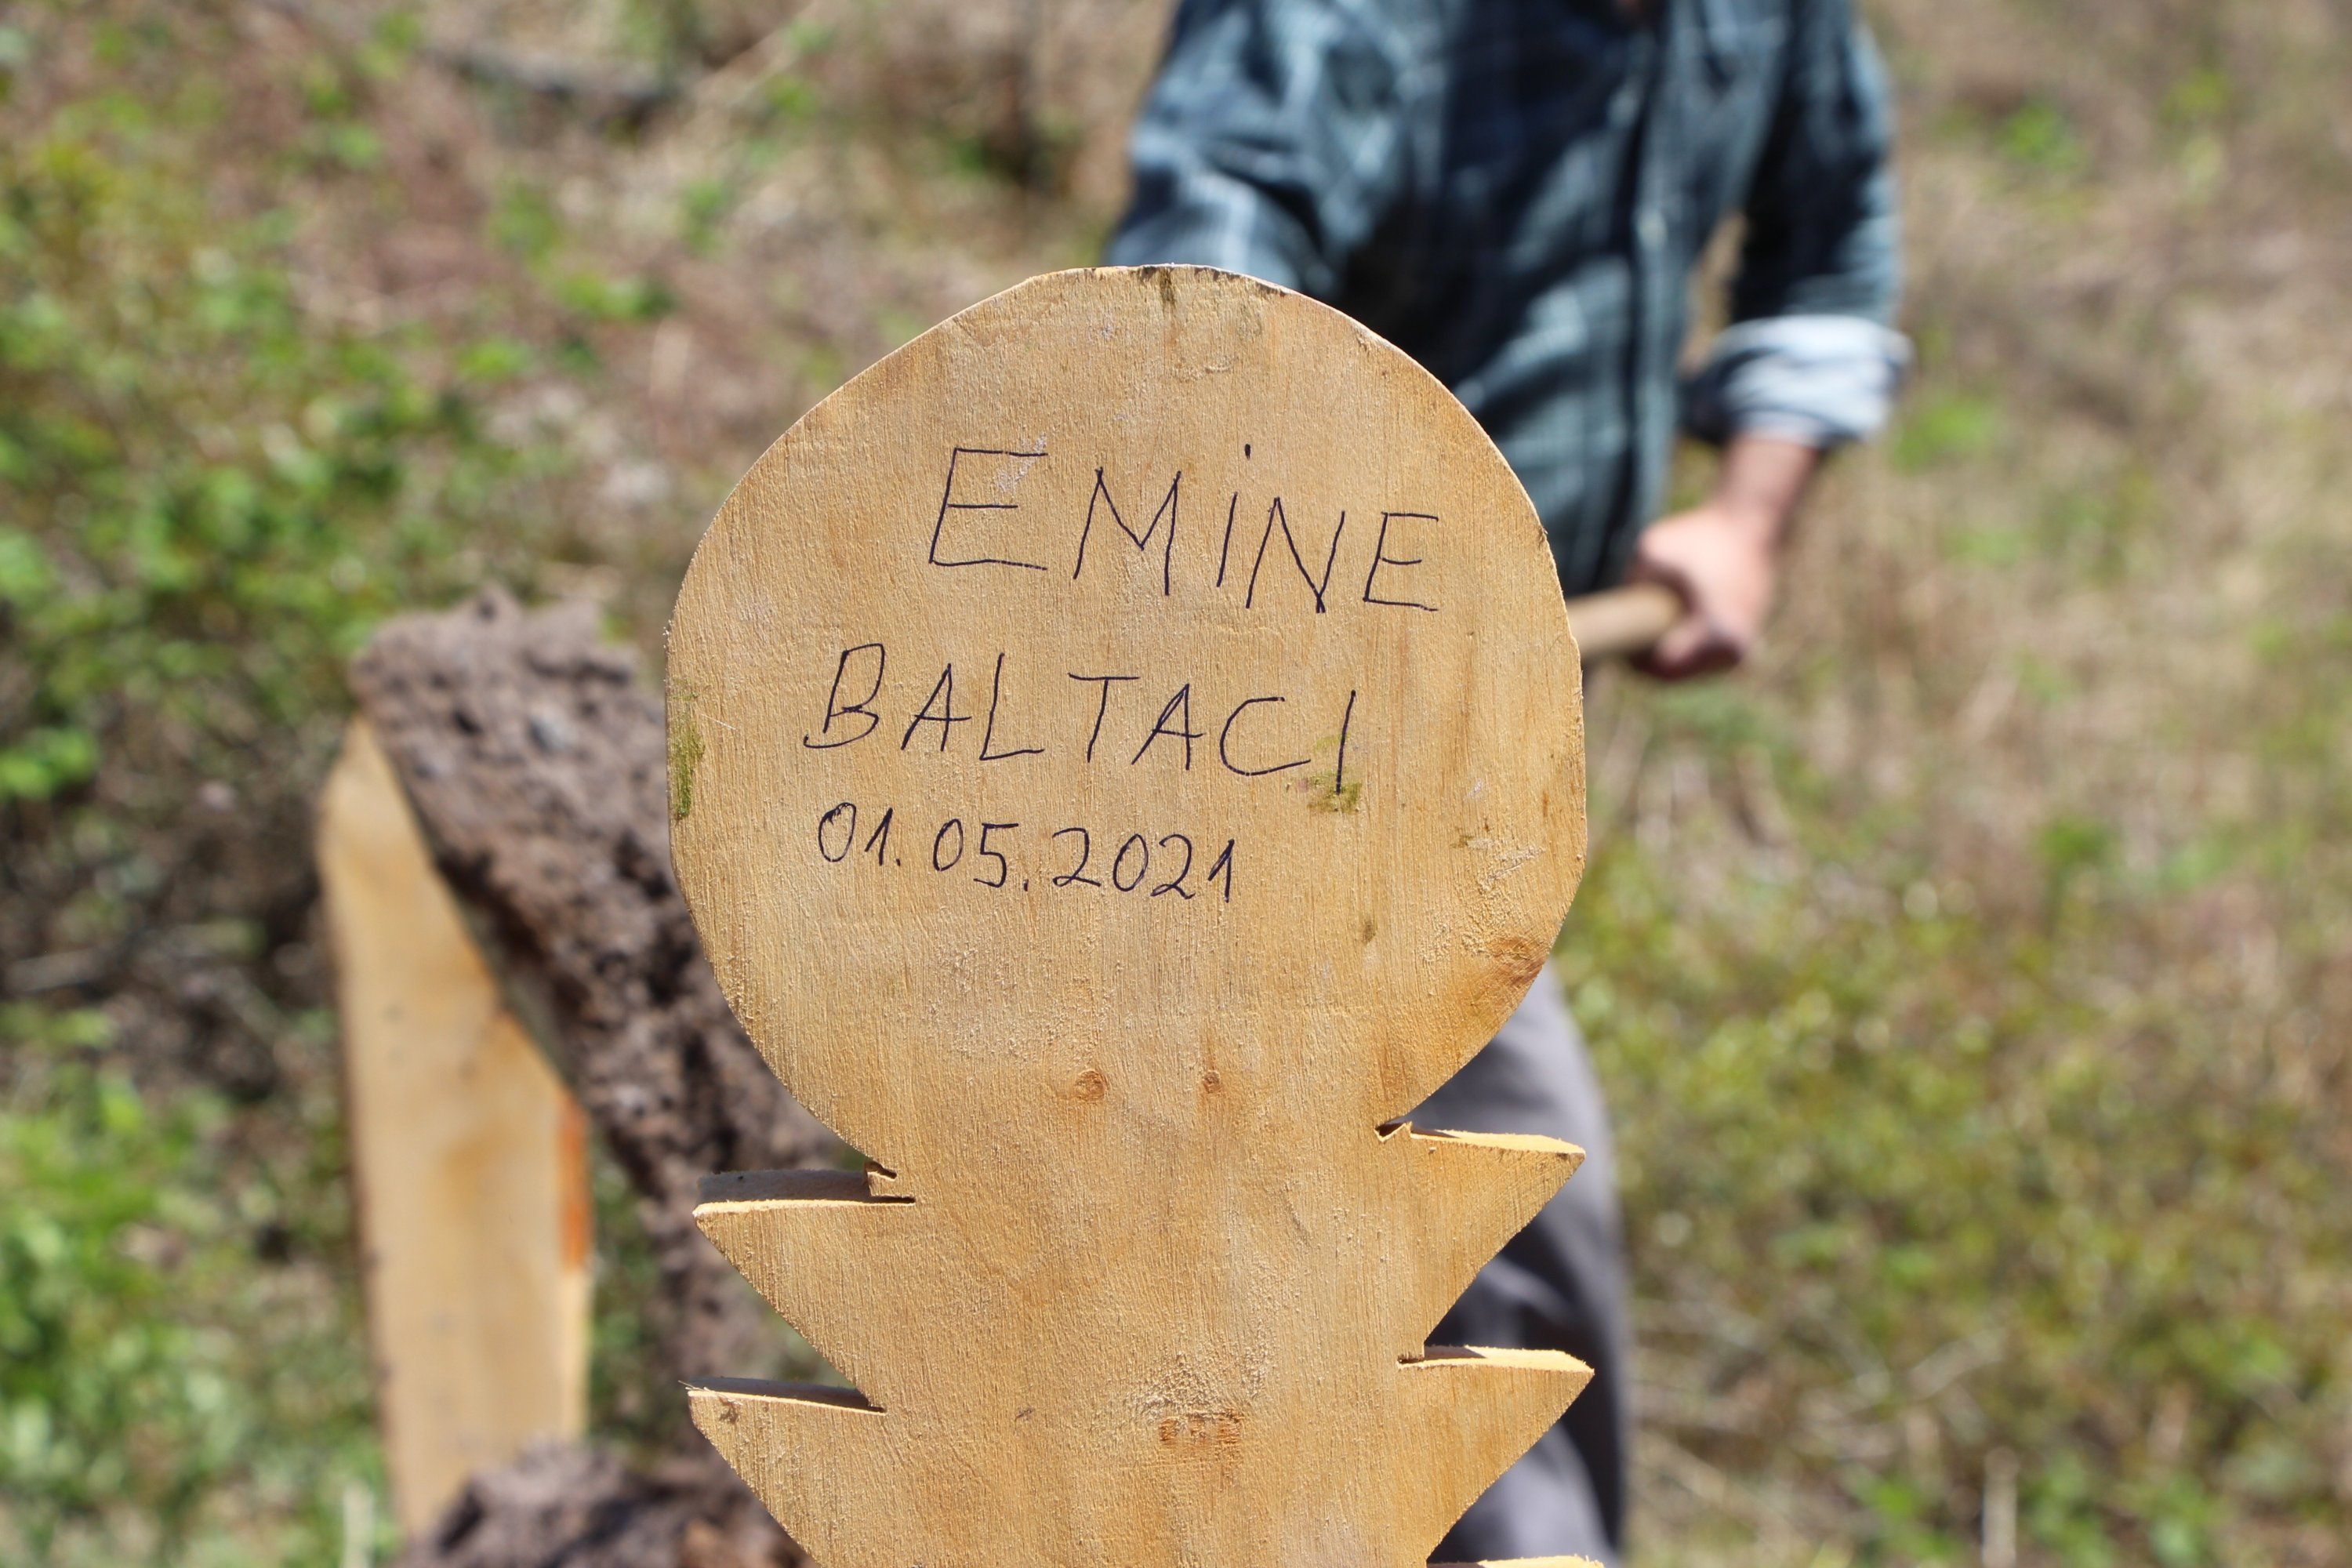 The grave of Emine Baltacı is seen in Trabzon, Turkey, May 2, 2021. (IHA Photo)